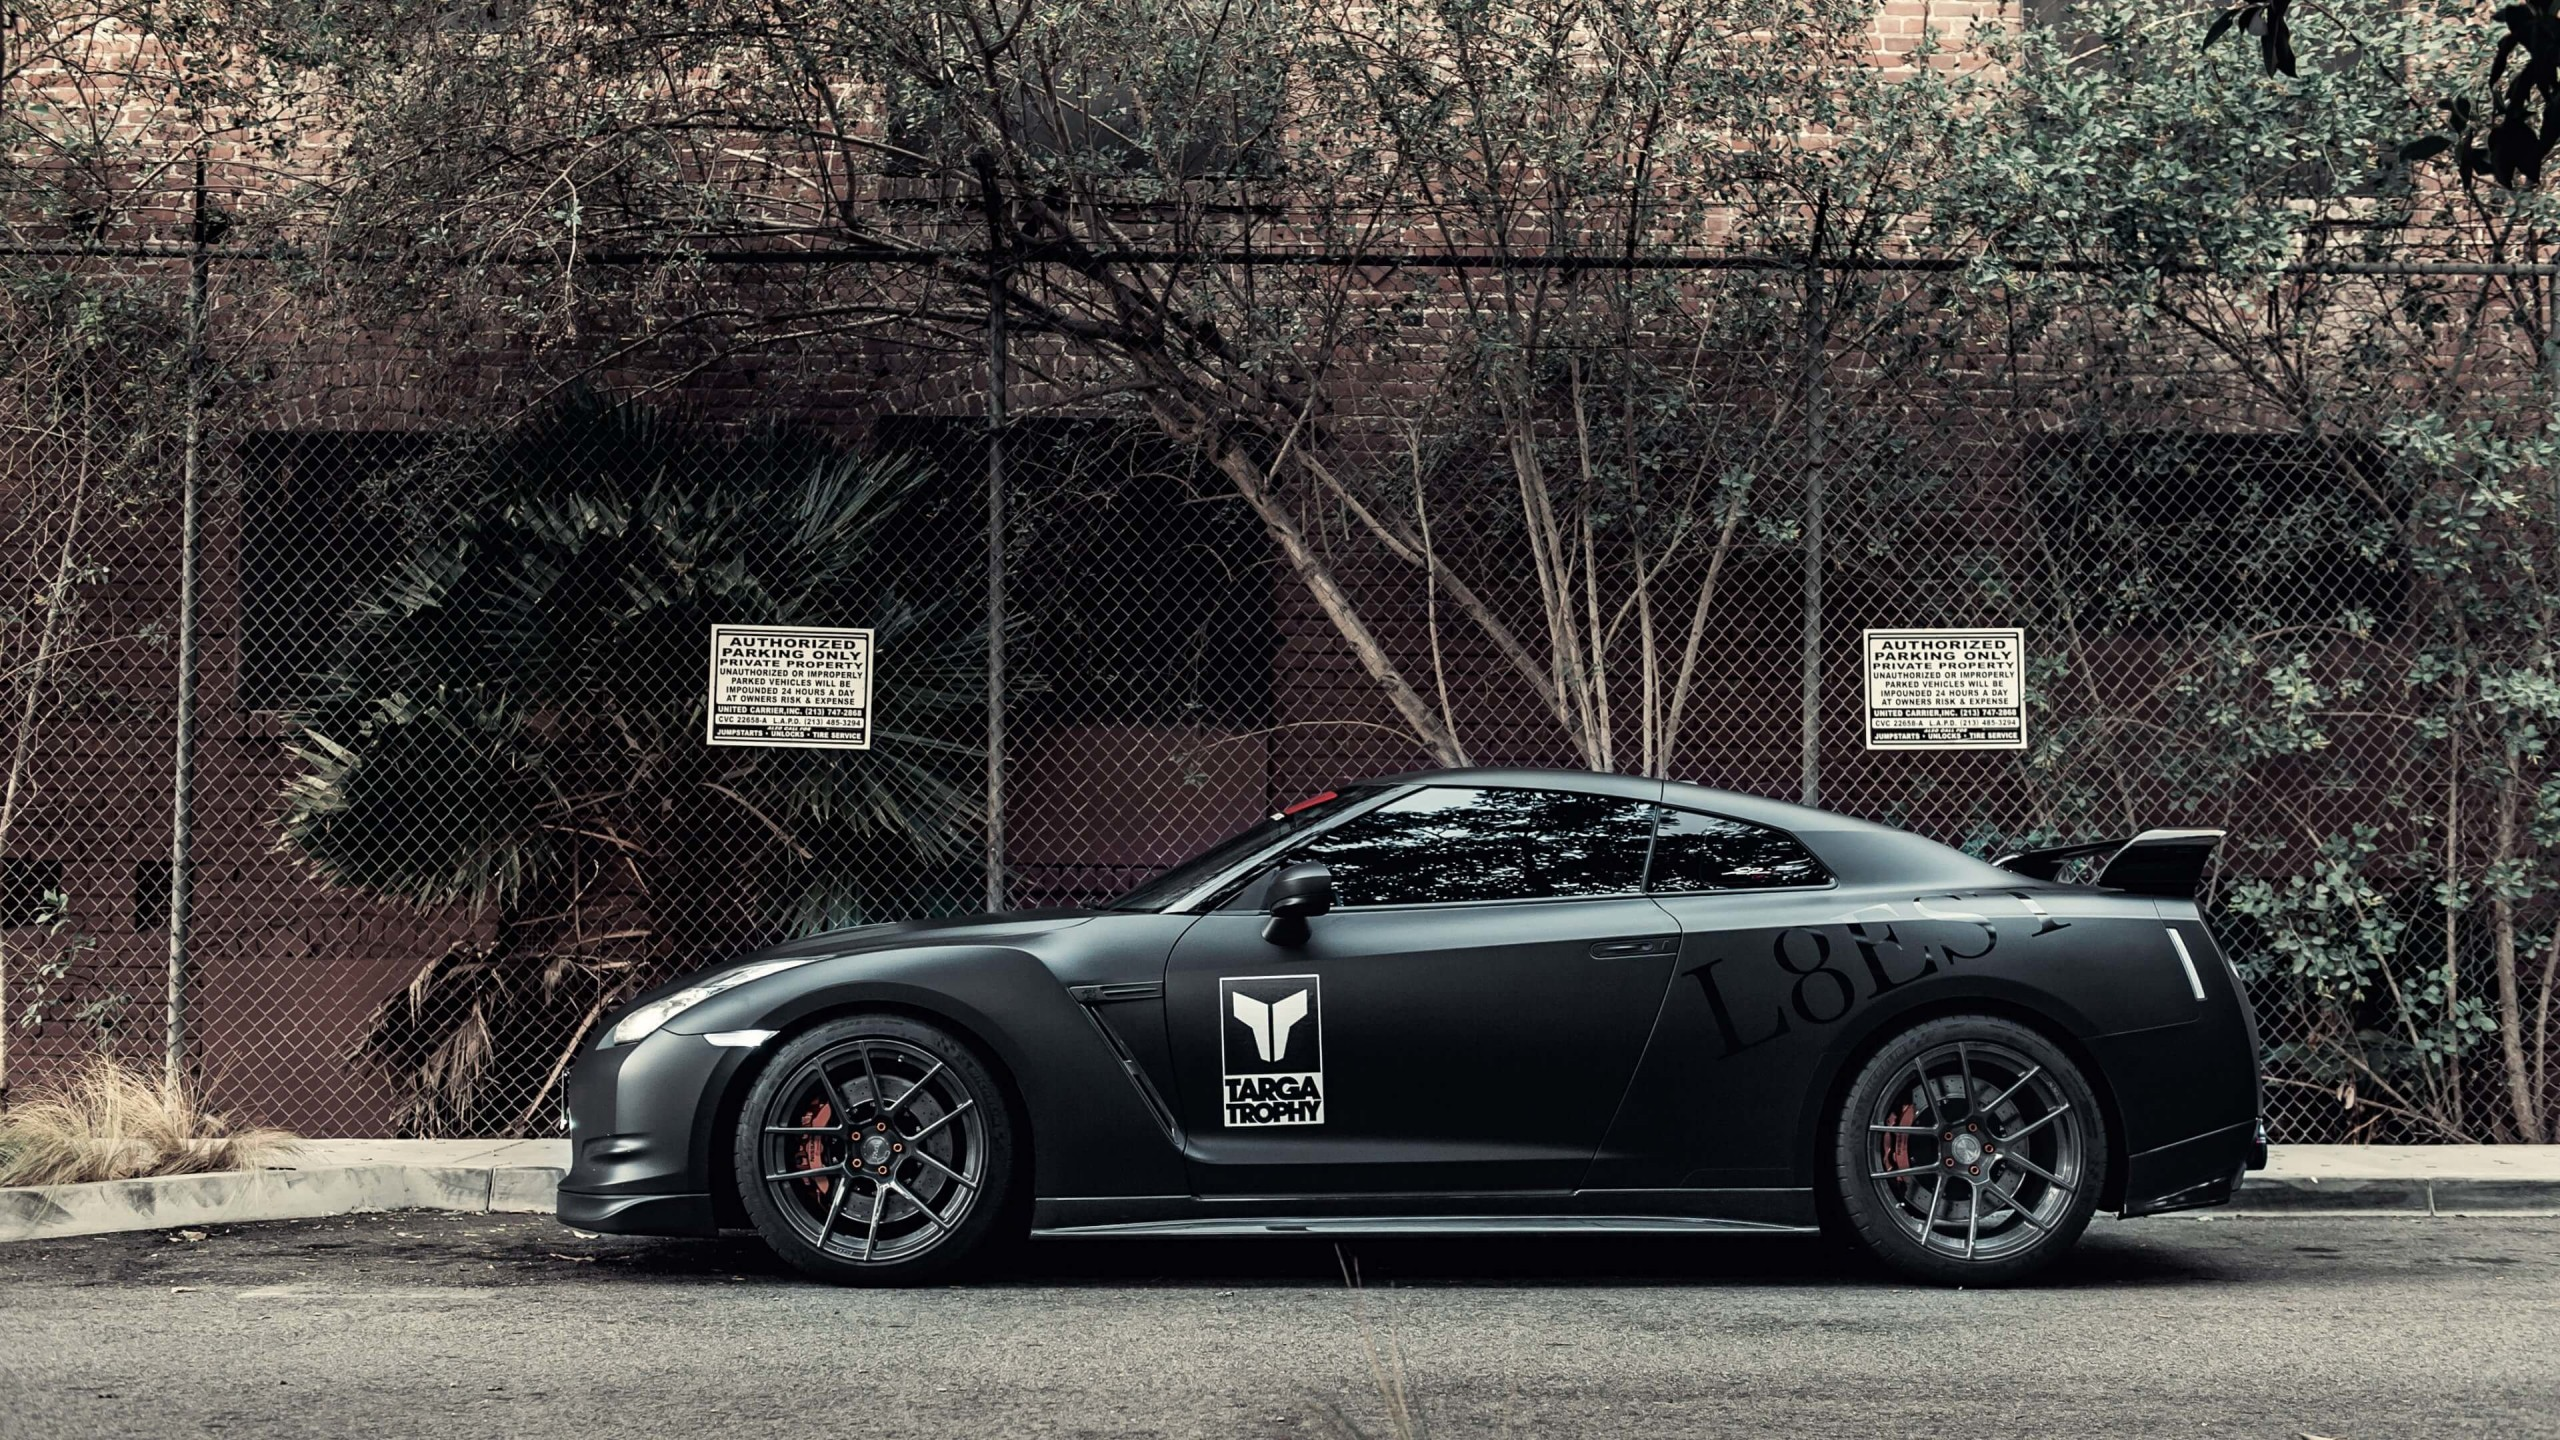 Nissan GT-R Black Edition Wallpaper for Desktop 2560x1440